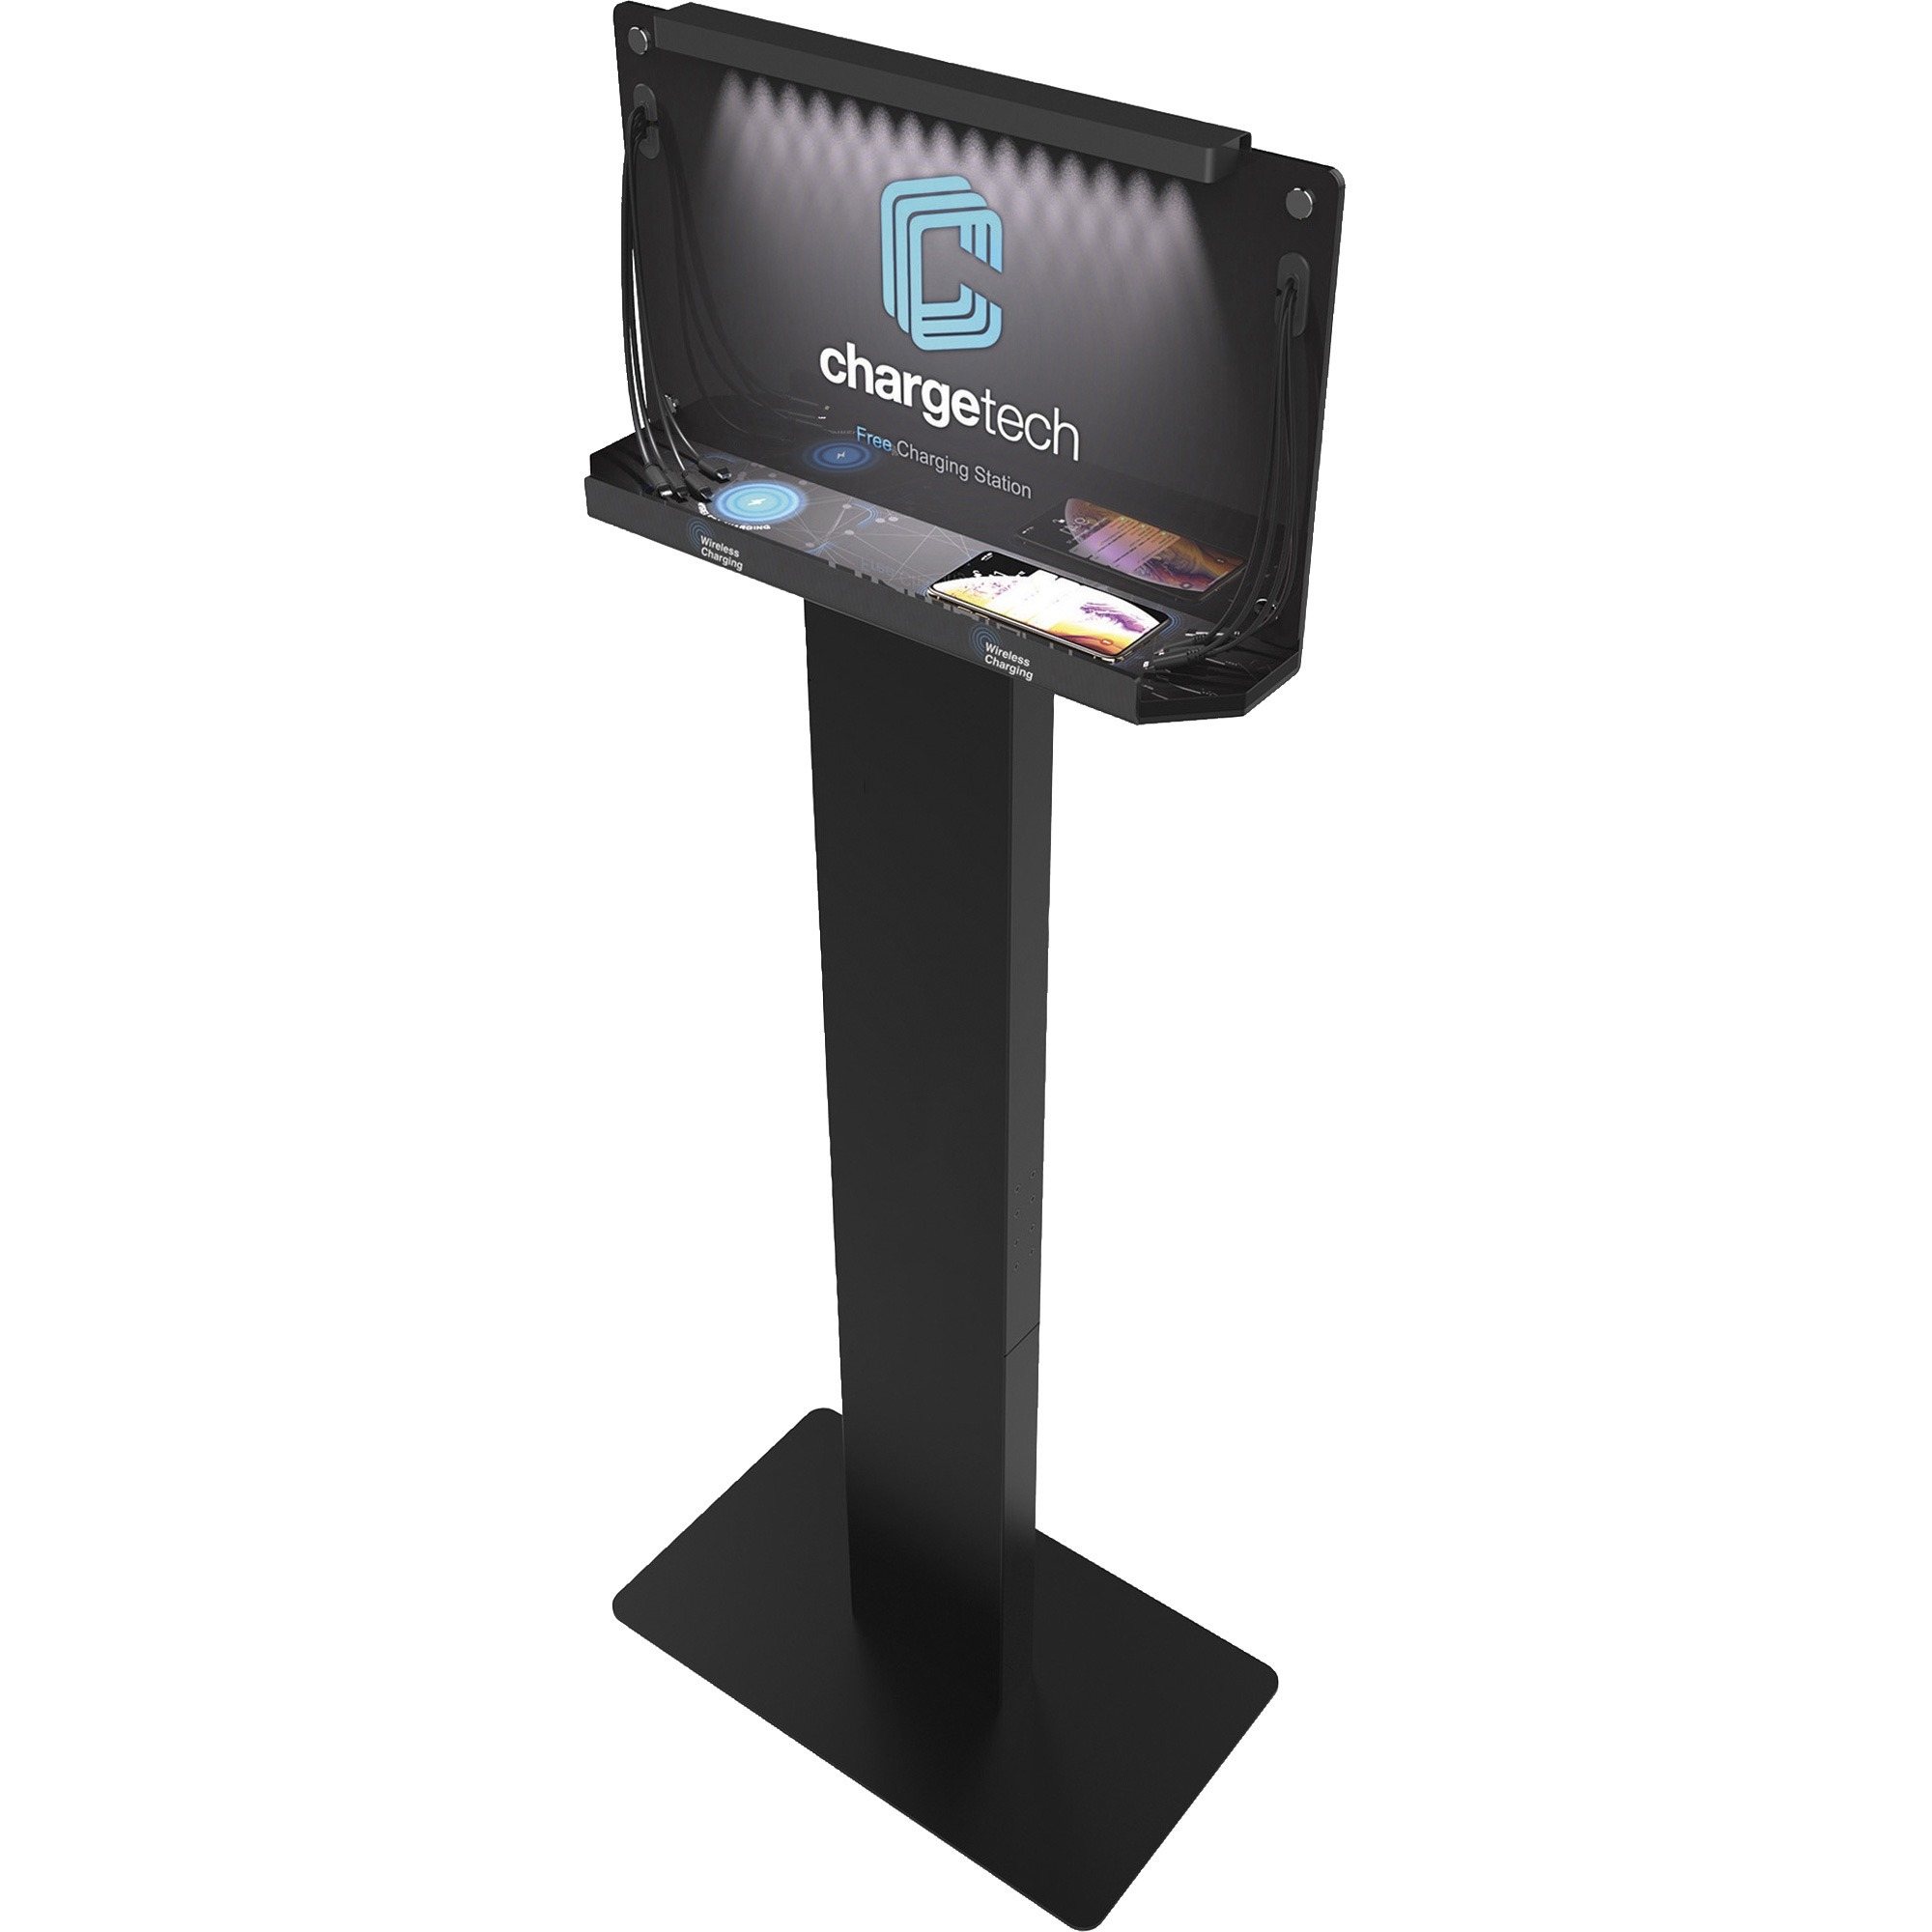 Multimedia Player Docking Stations